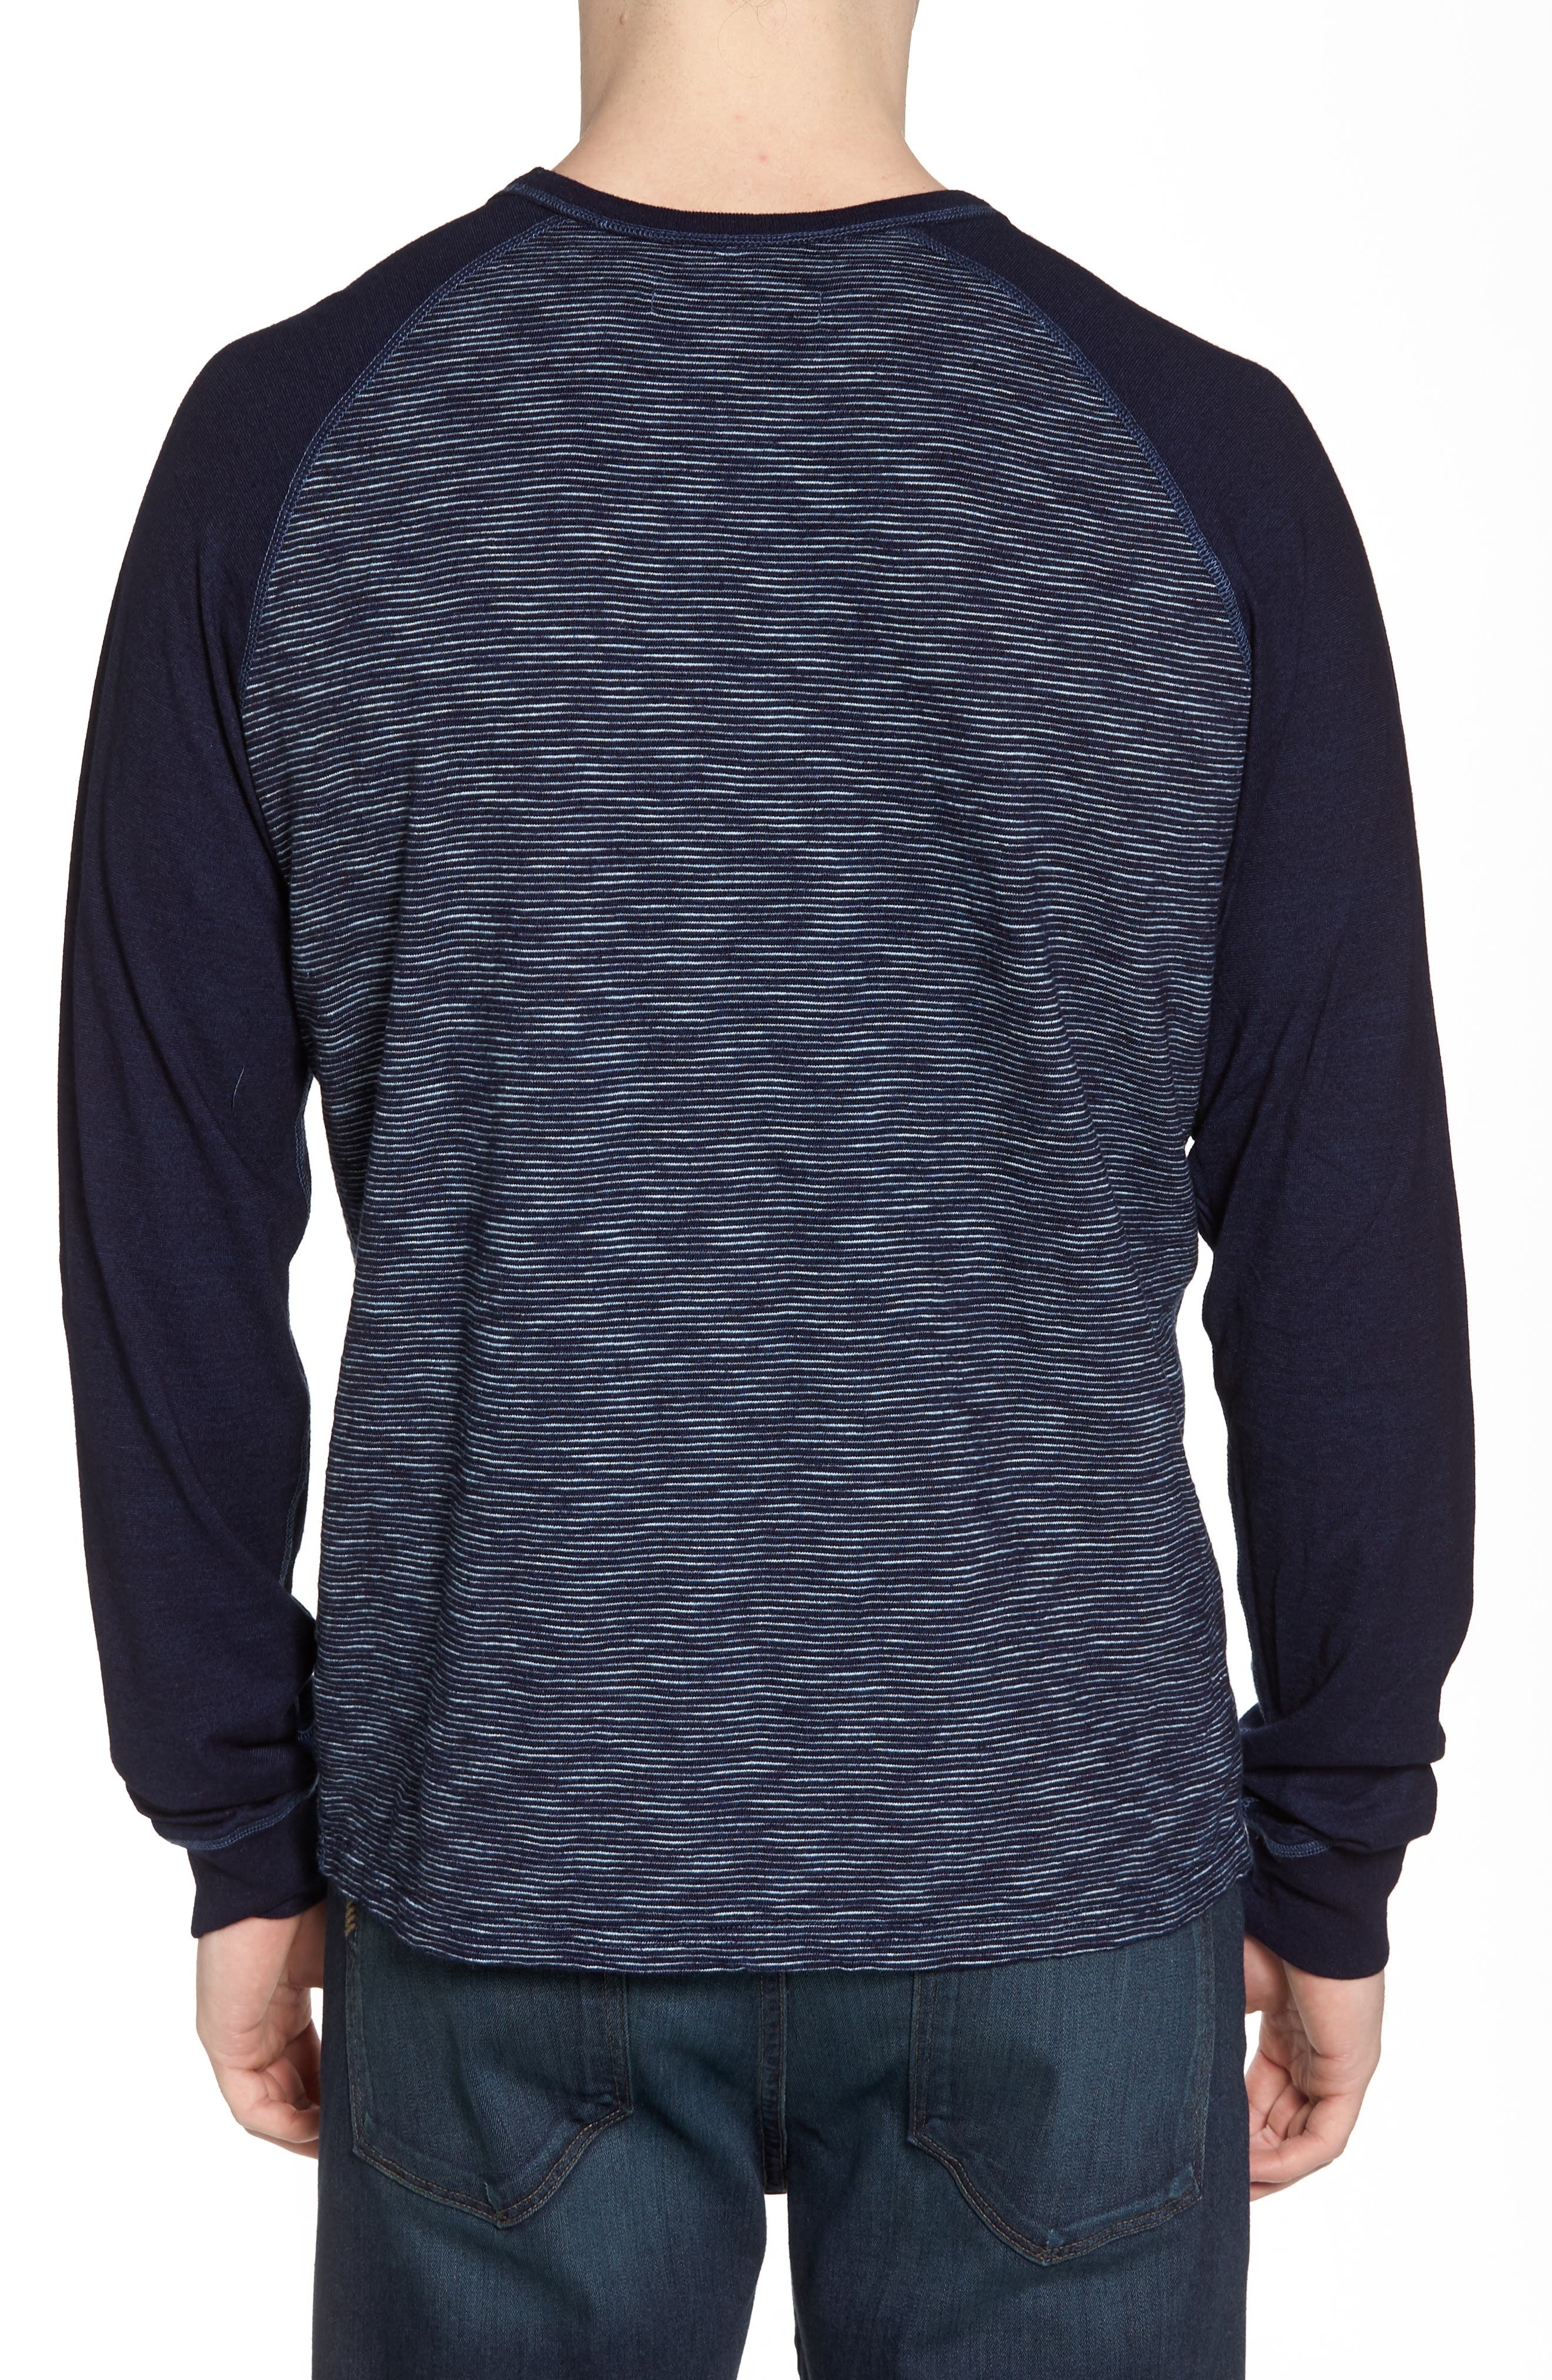 NIFTY GENIUS,                             Jackie Stripe Raglan Pullover,                             Alternate thumbnail 2, color,                             401